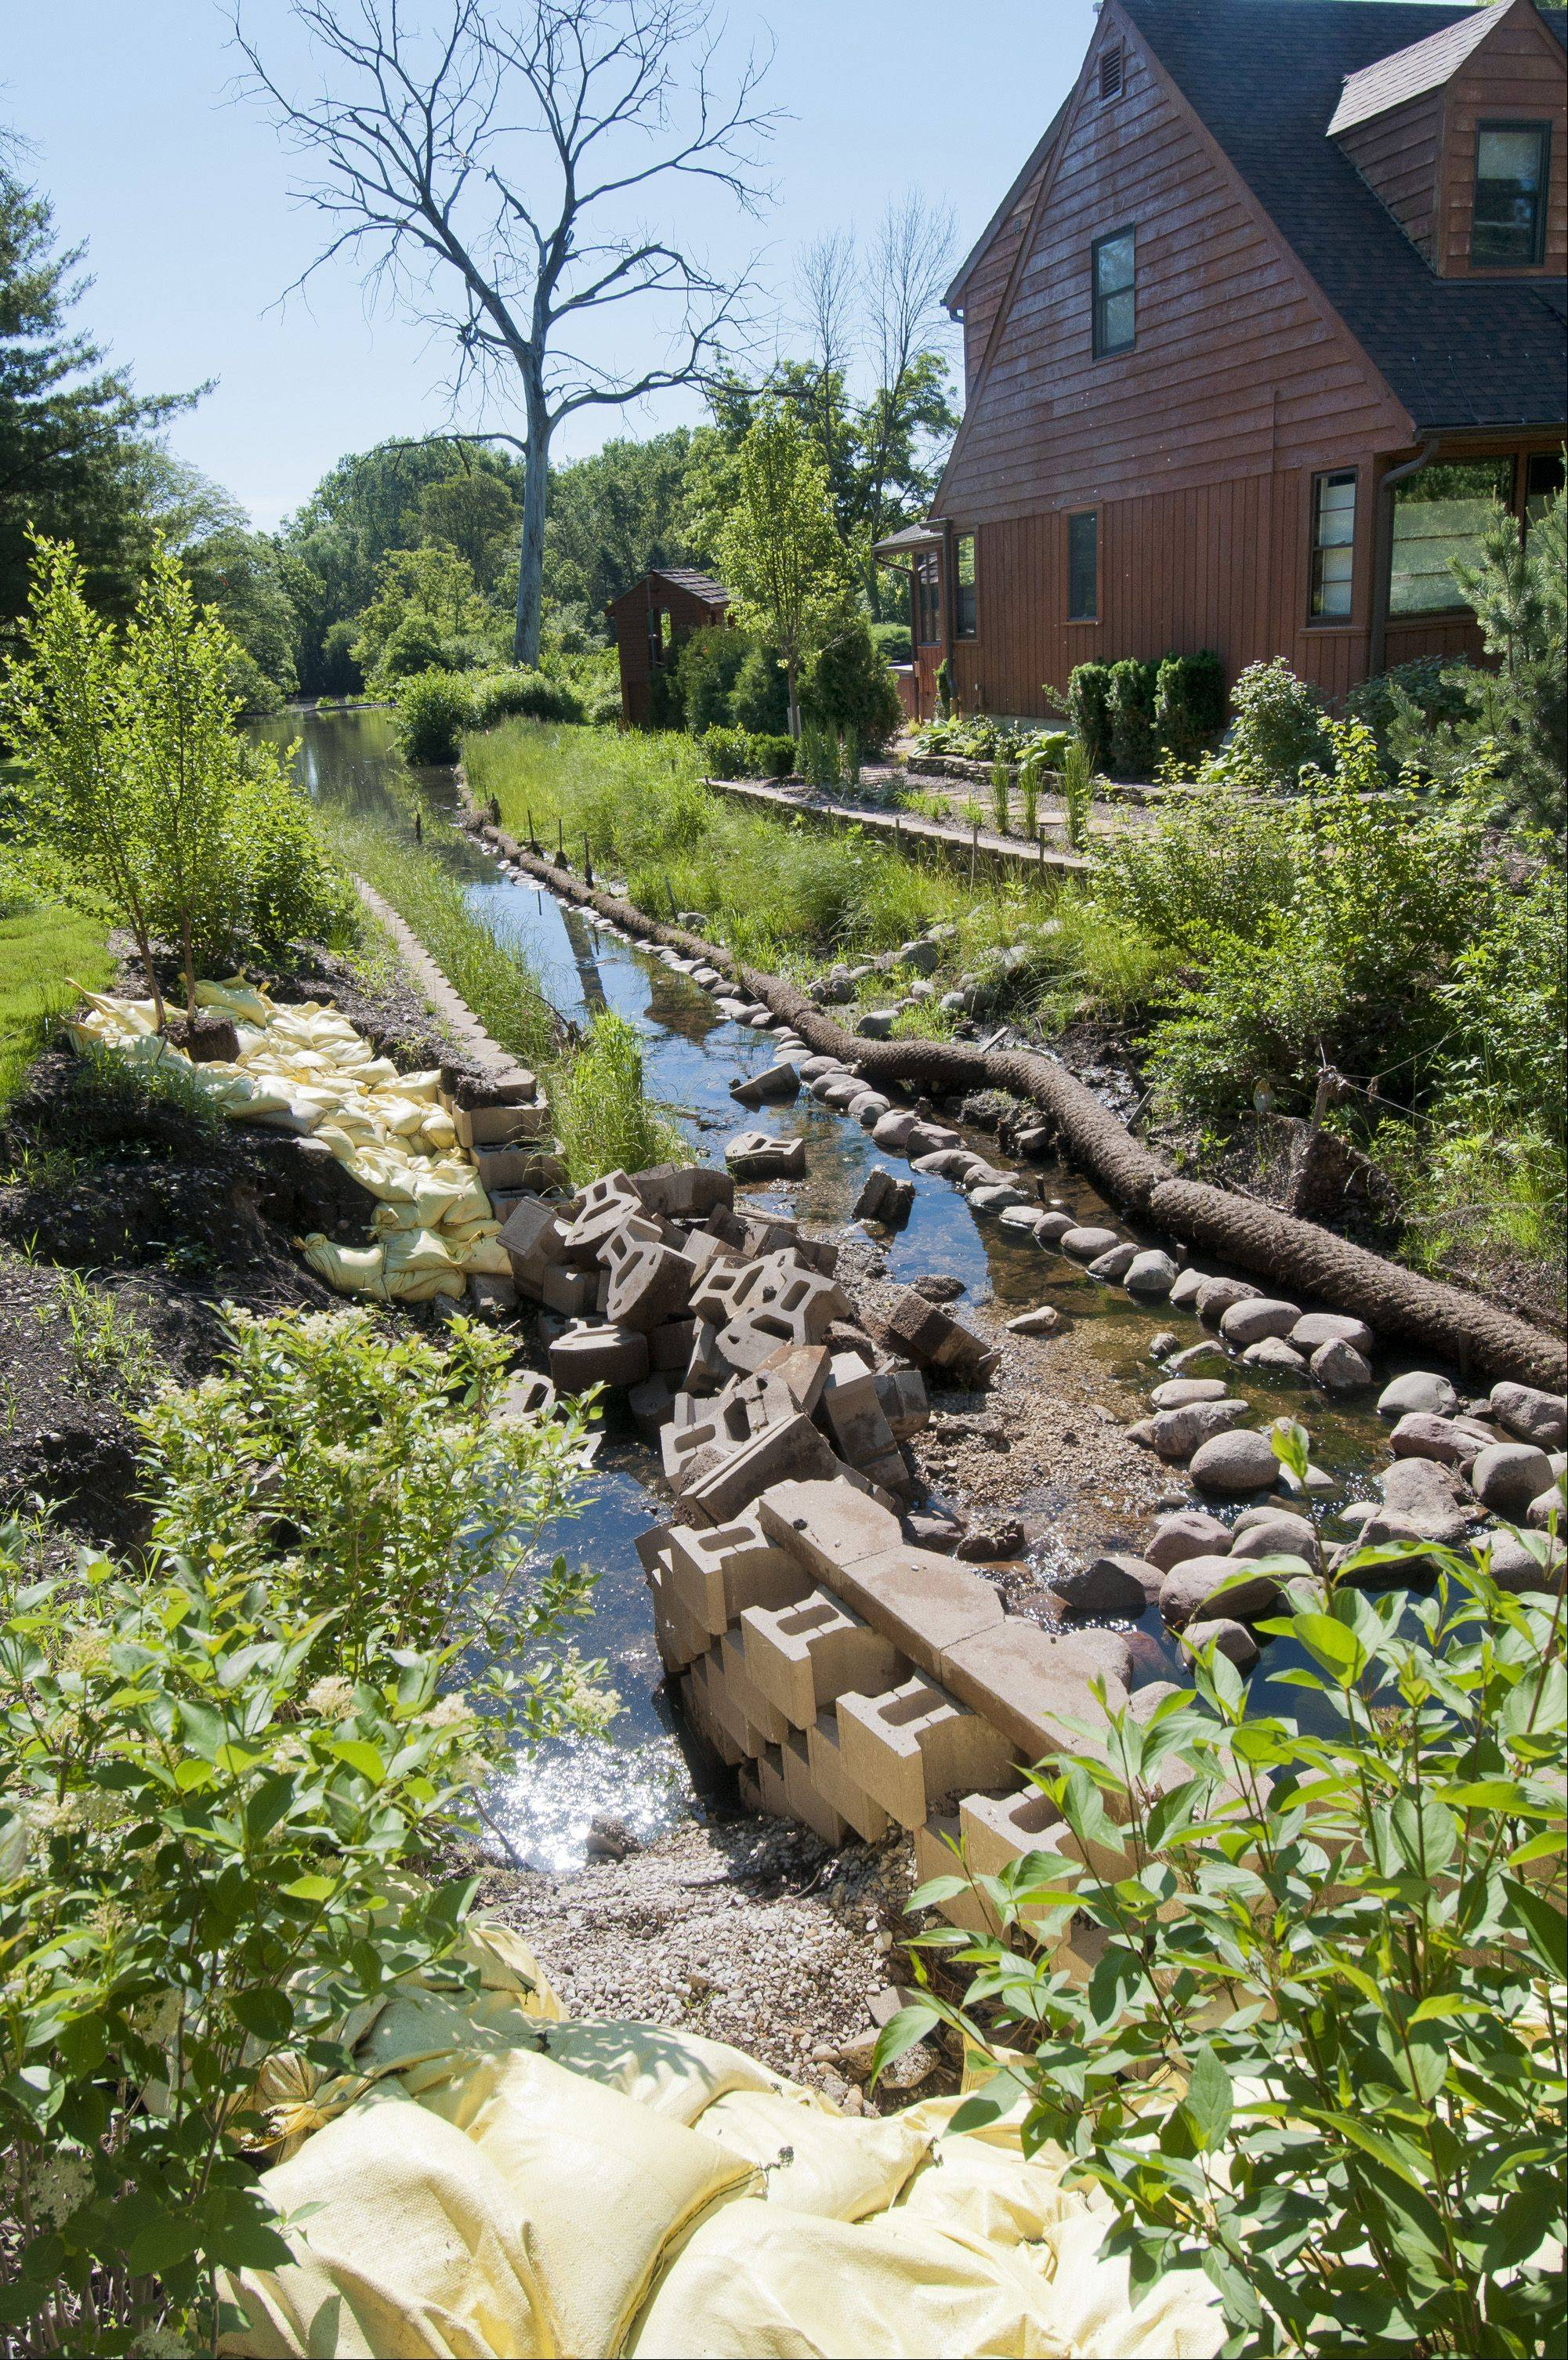 Work beginning to combat Glen Ellyn flooding